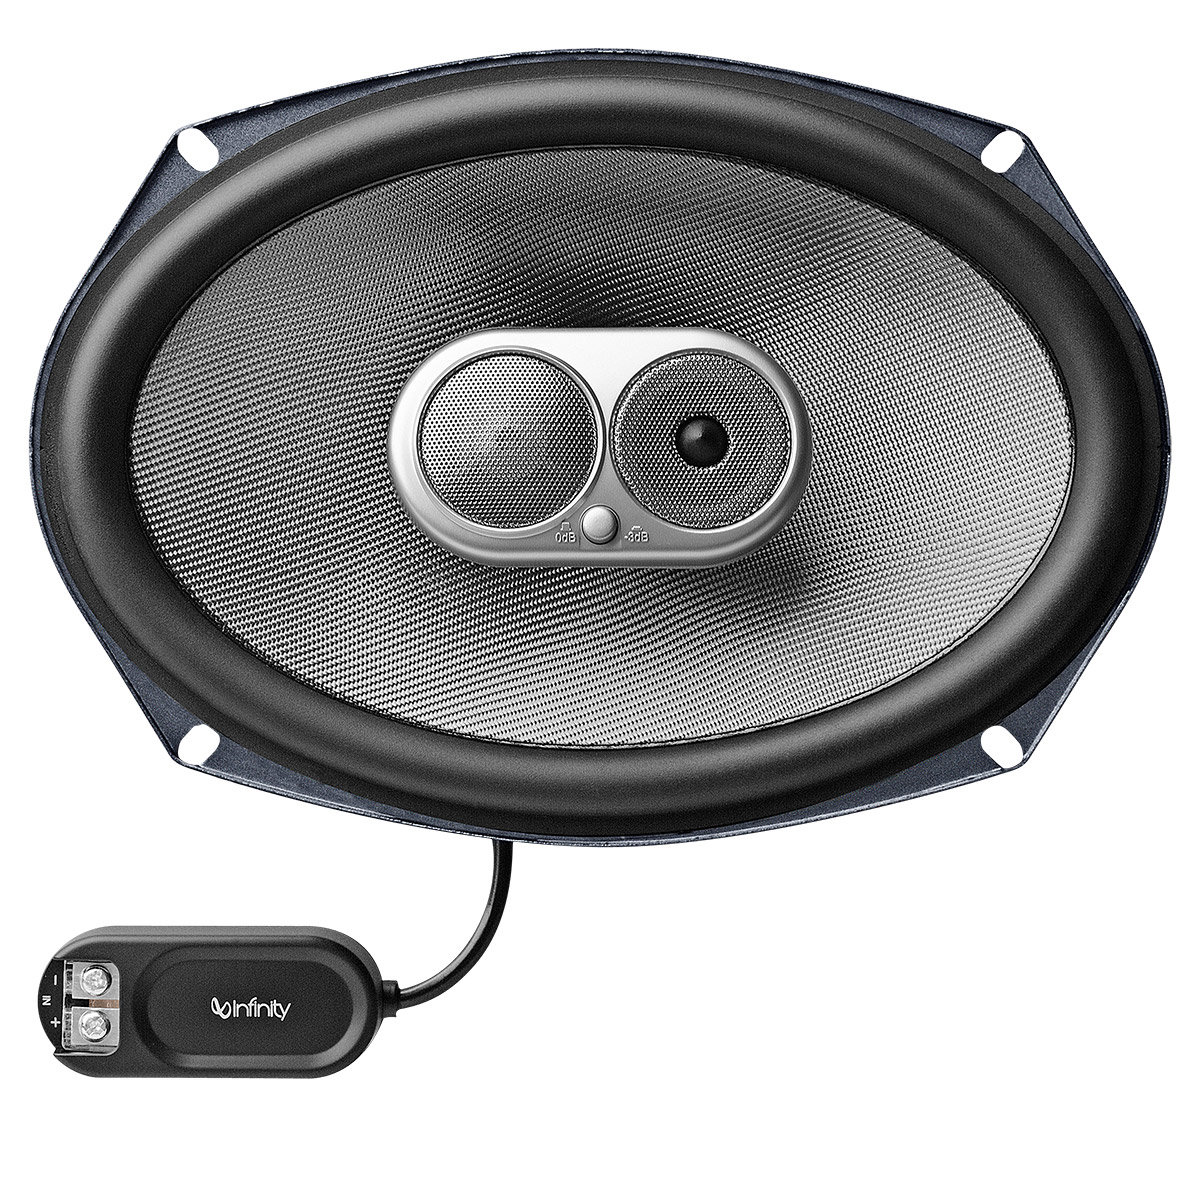 What Are the Best Car Audio Systems